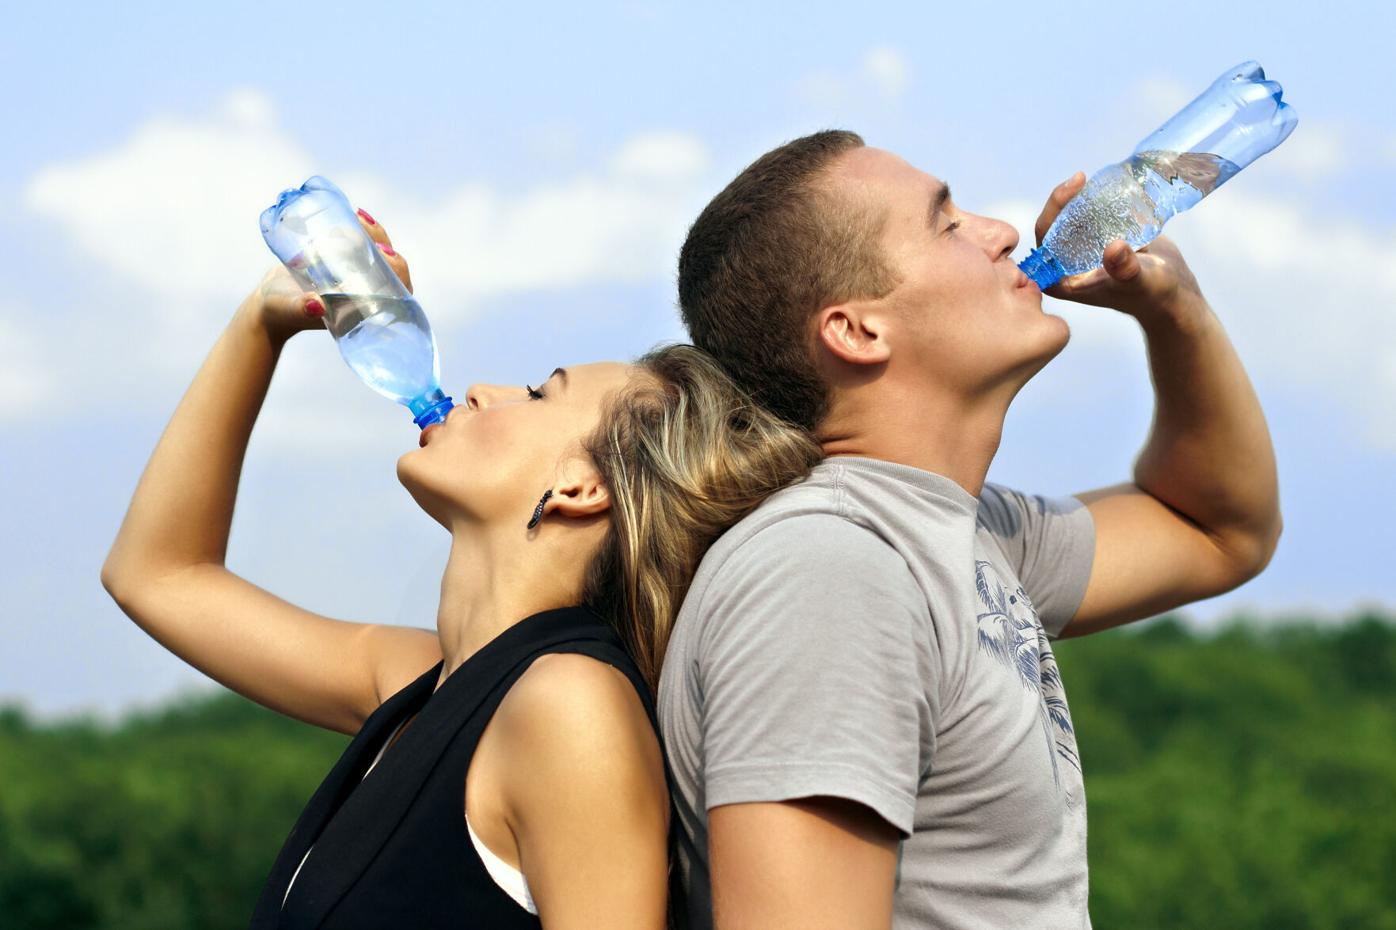 Could drinking more water reduce your stress?